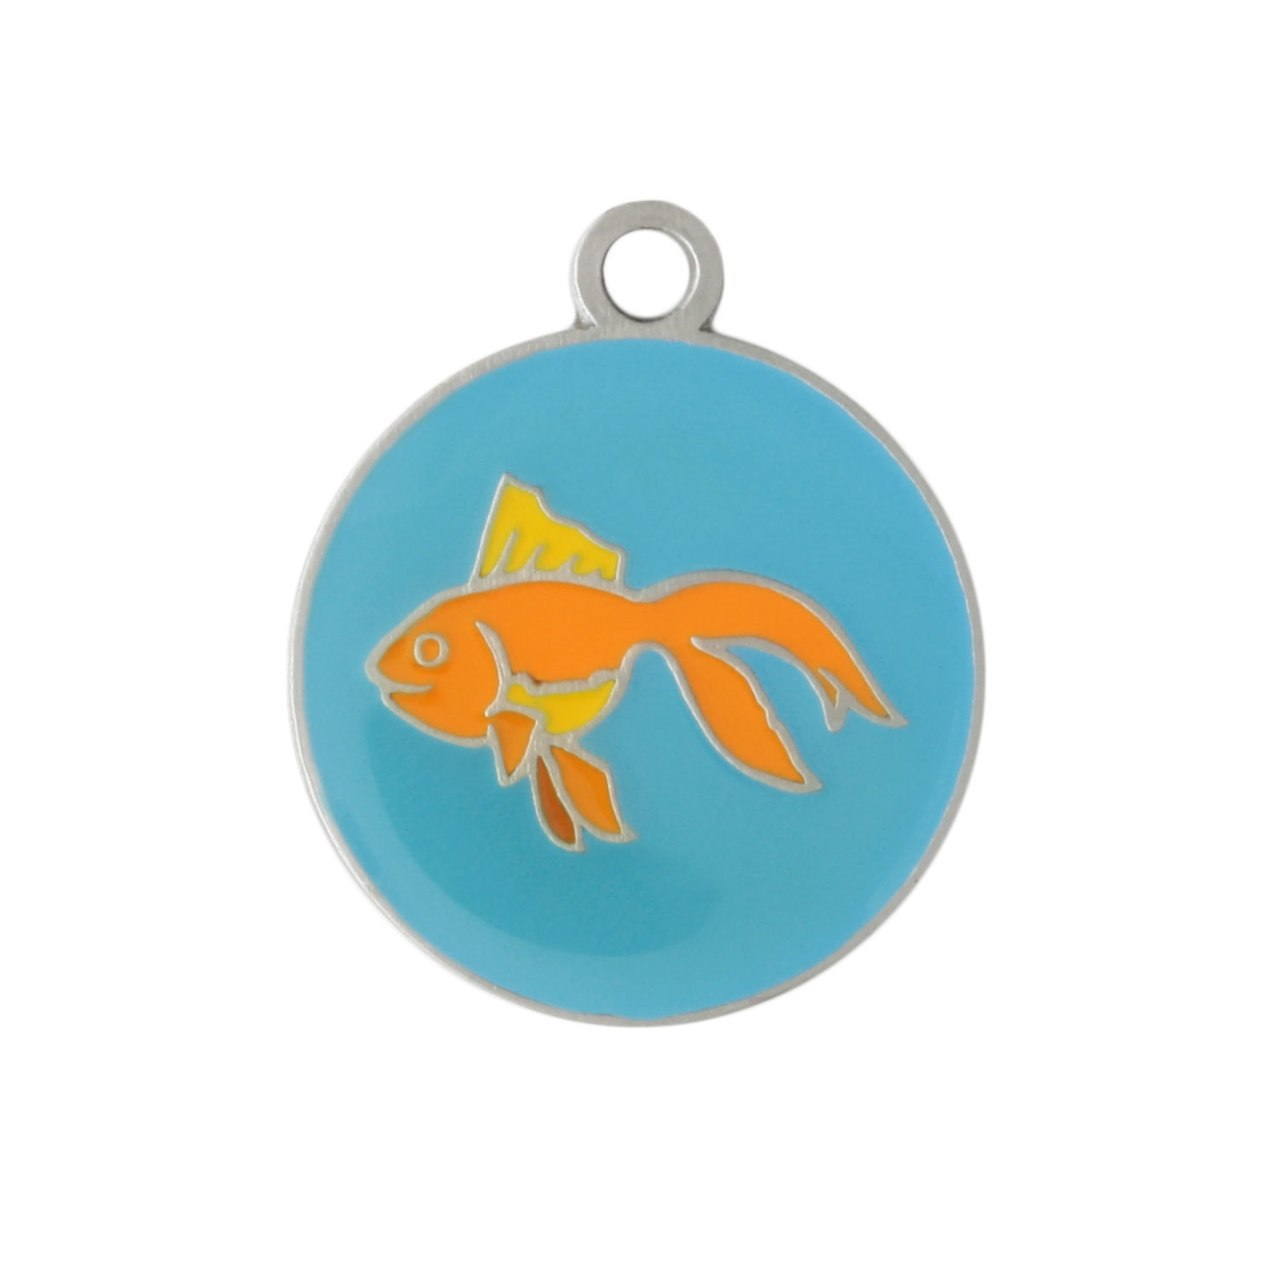 Painted Designer Cat ID Tags by Andrew Blue Fish